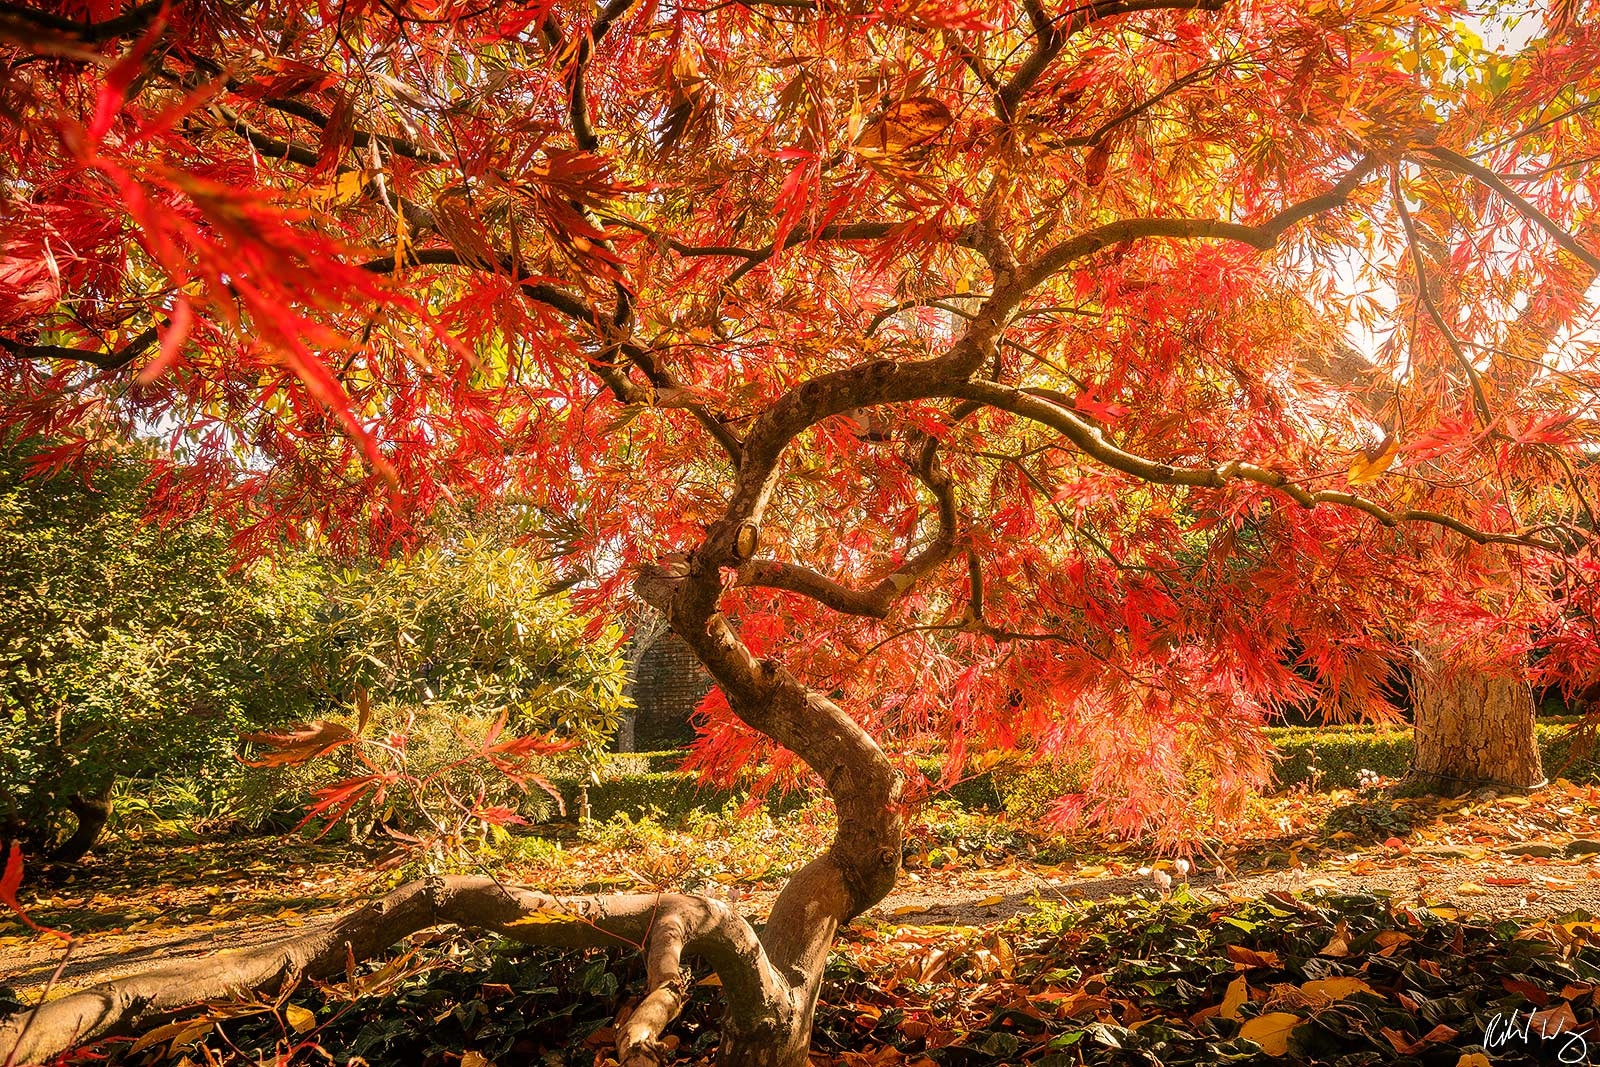 Lace Leaf Japanese Maple Tree at Filoli Garden, Woodside, California A mythical greek creature, a phoenix is an ancient bird...